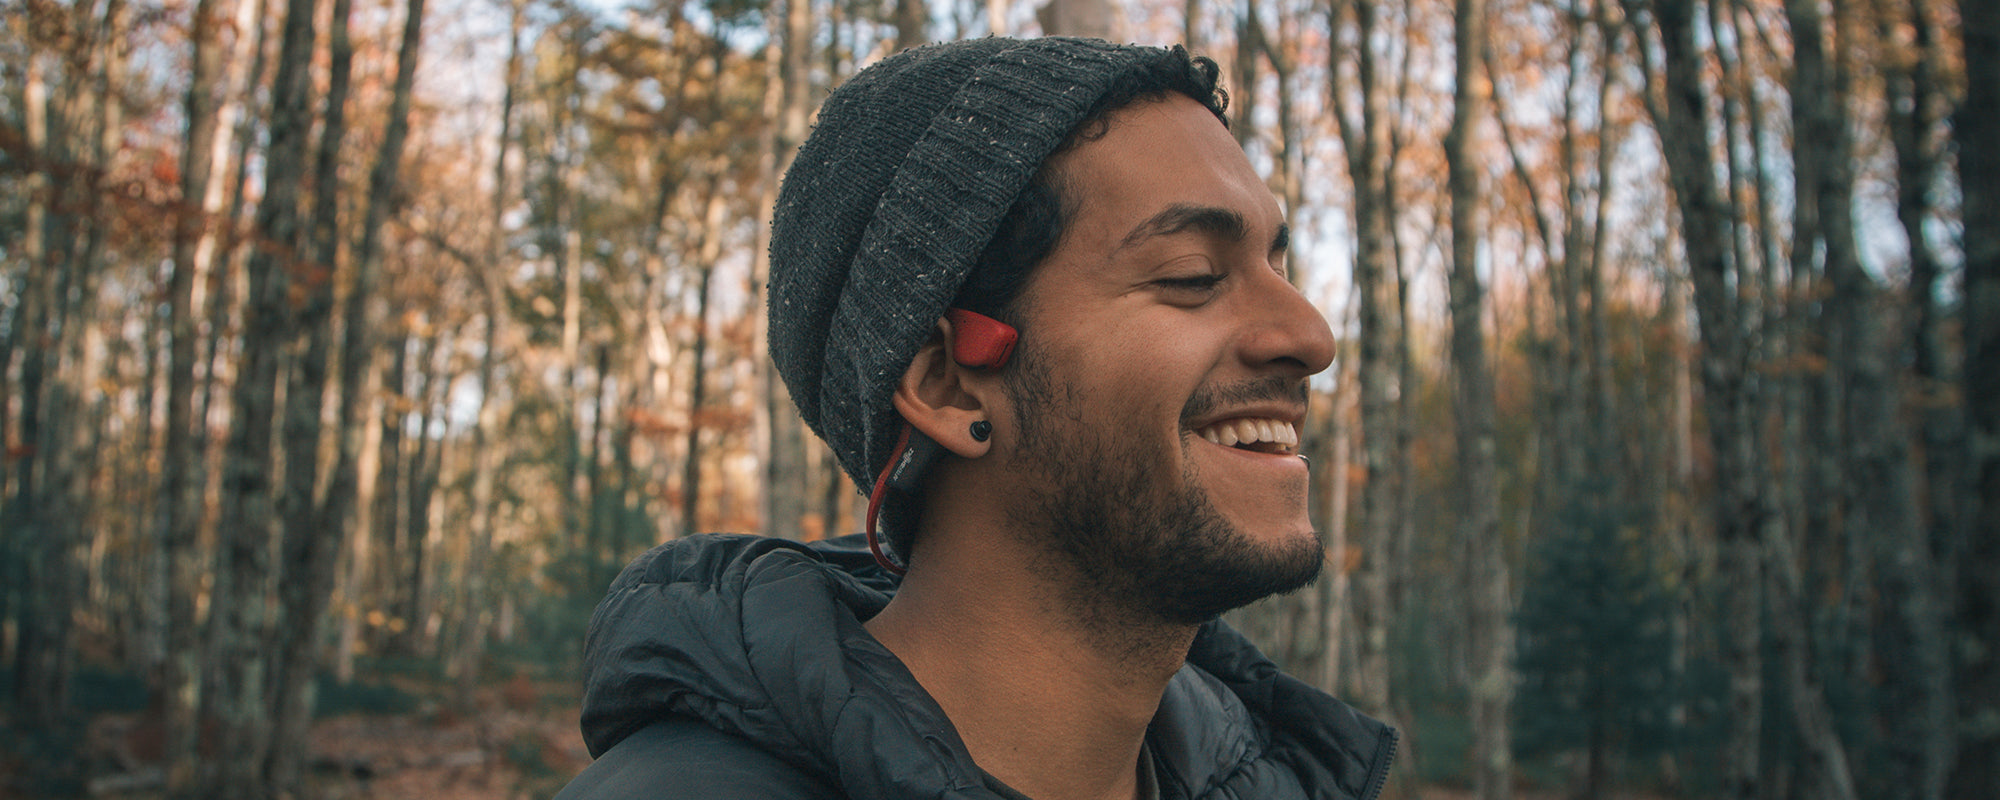 Man outside in forest wearing AfterShokz Air headphones